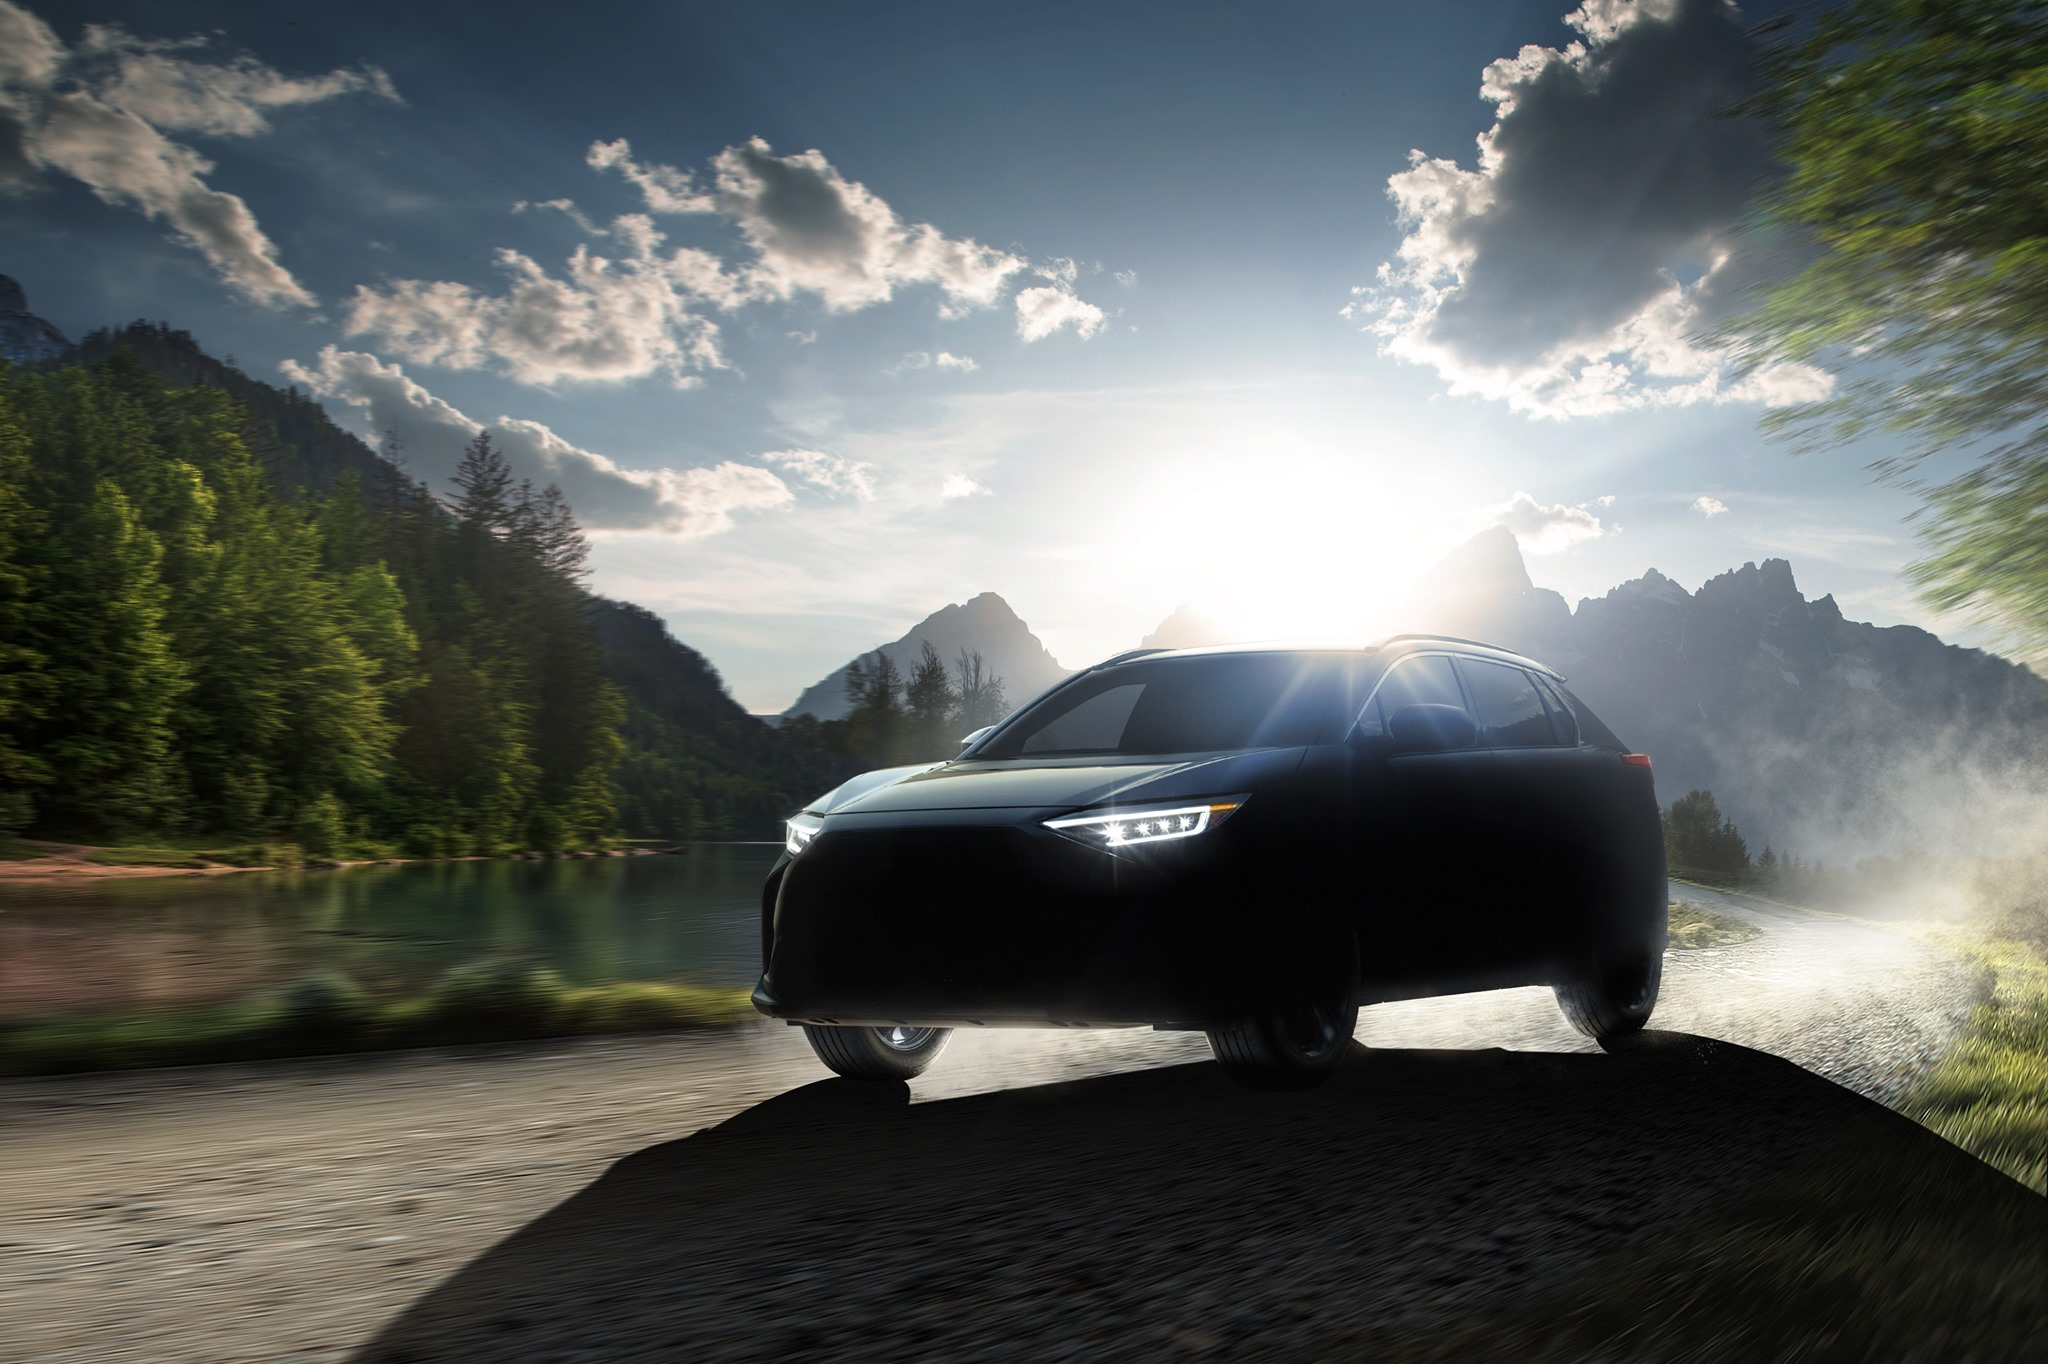 Subaru of America Announces First Electric Vehicle, the Solterra